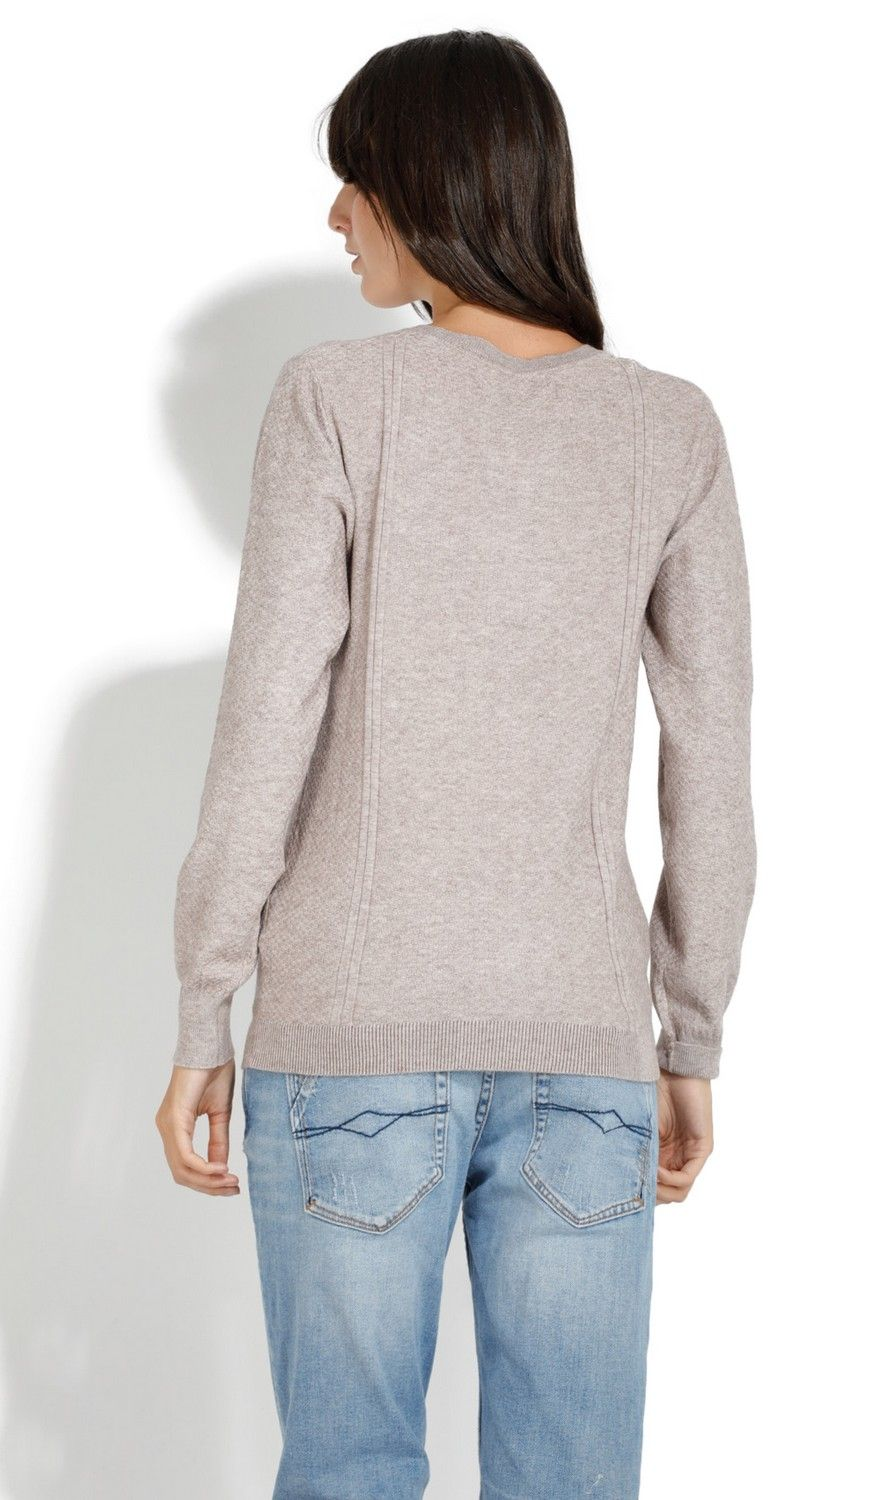 William De Faye Round Neck Long Sleeve Sweater in Beige